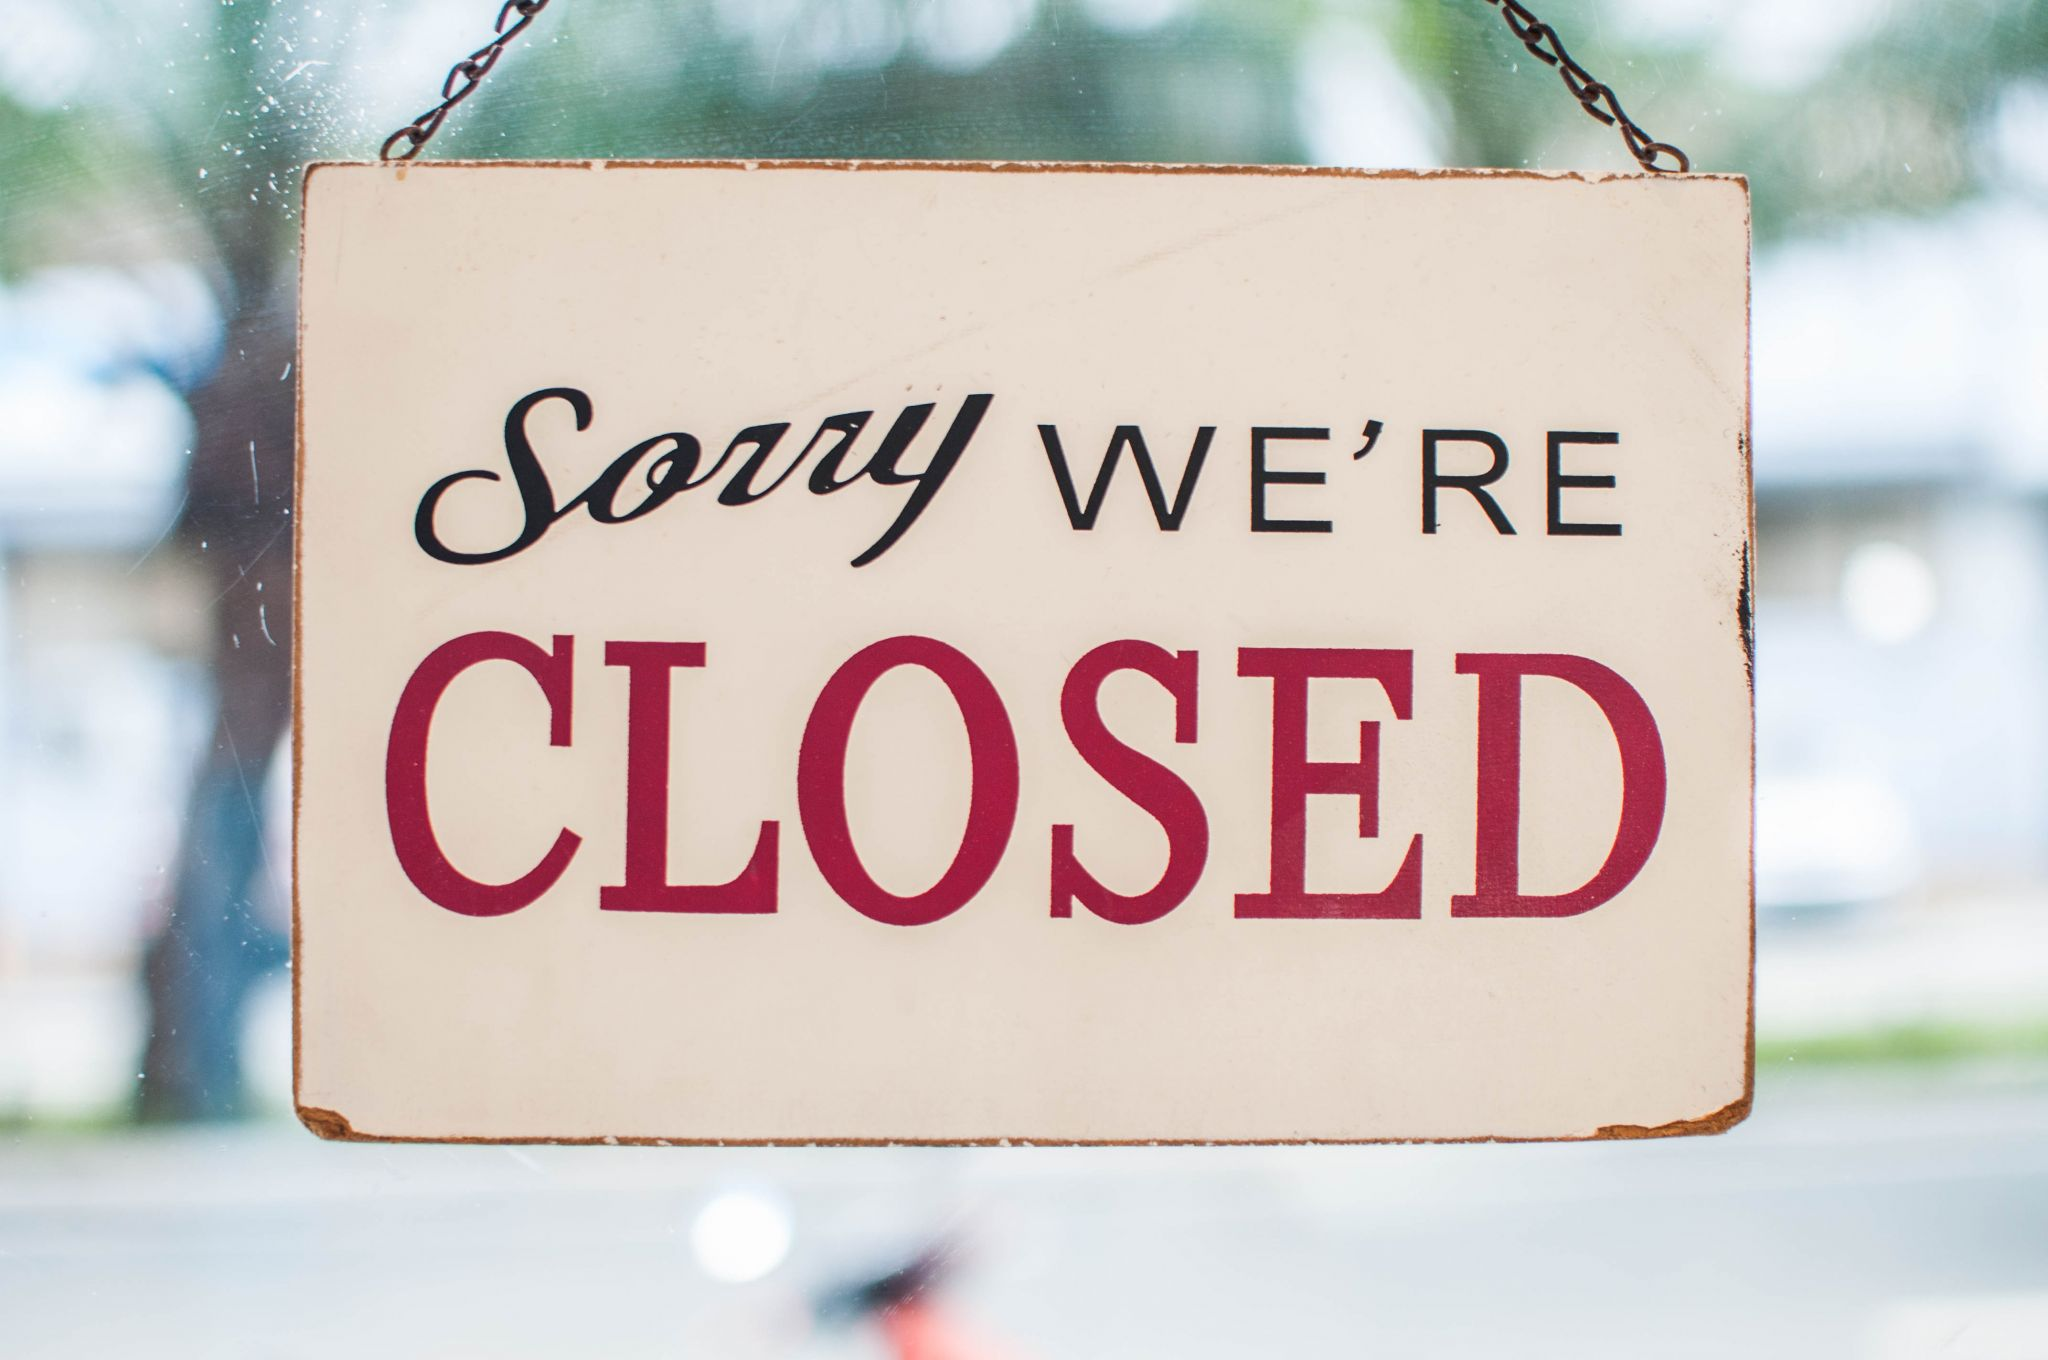 More than 400 restaurants closed throughout San Francisco during 2019